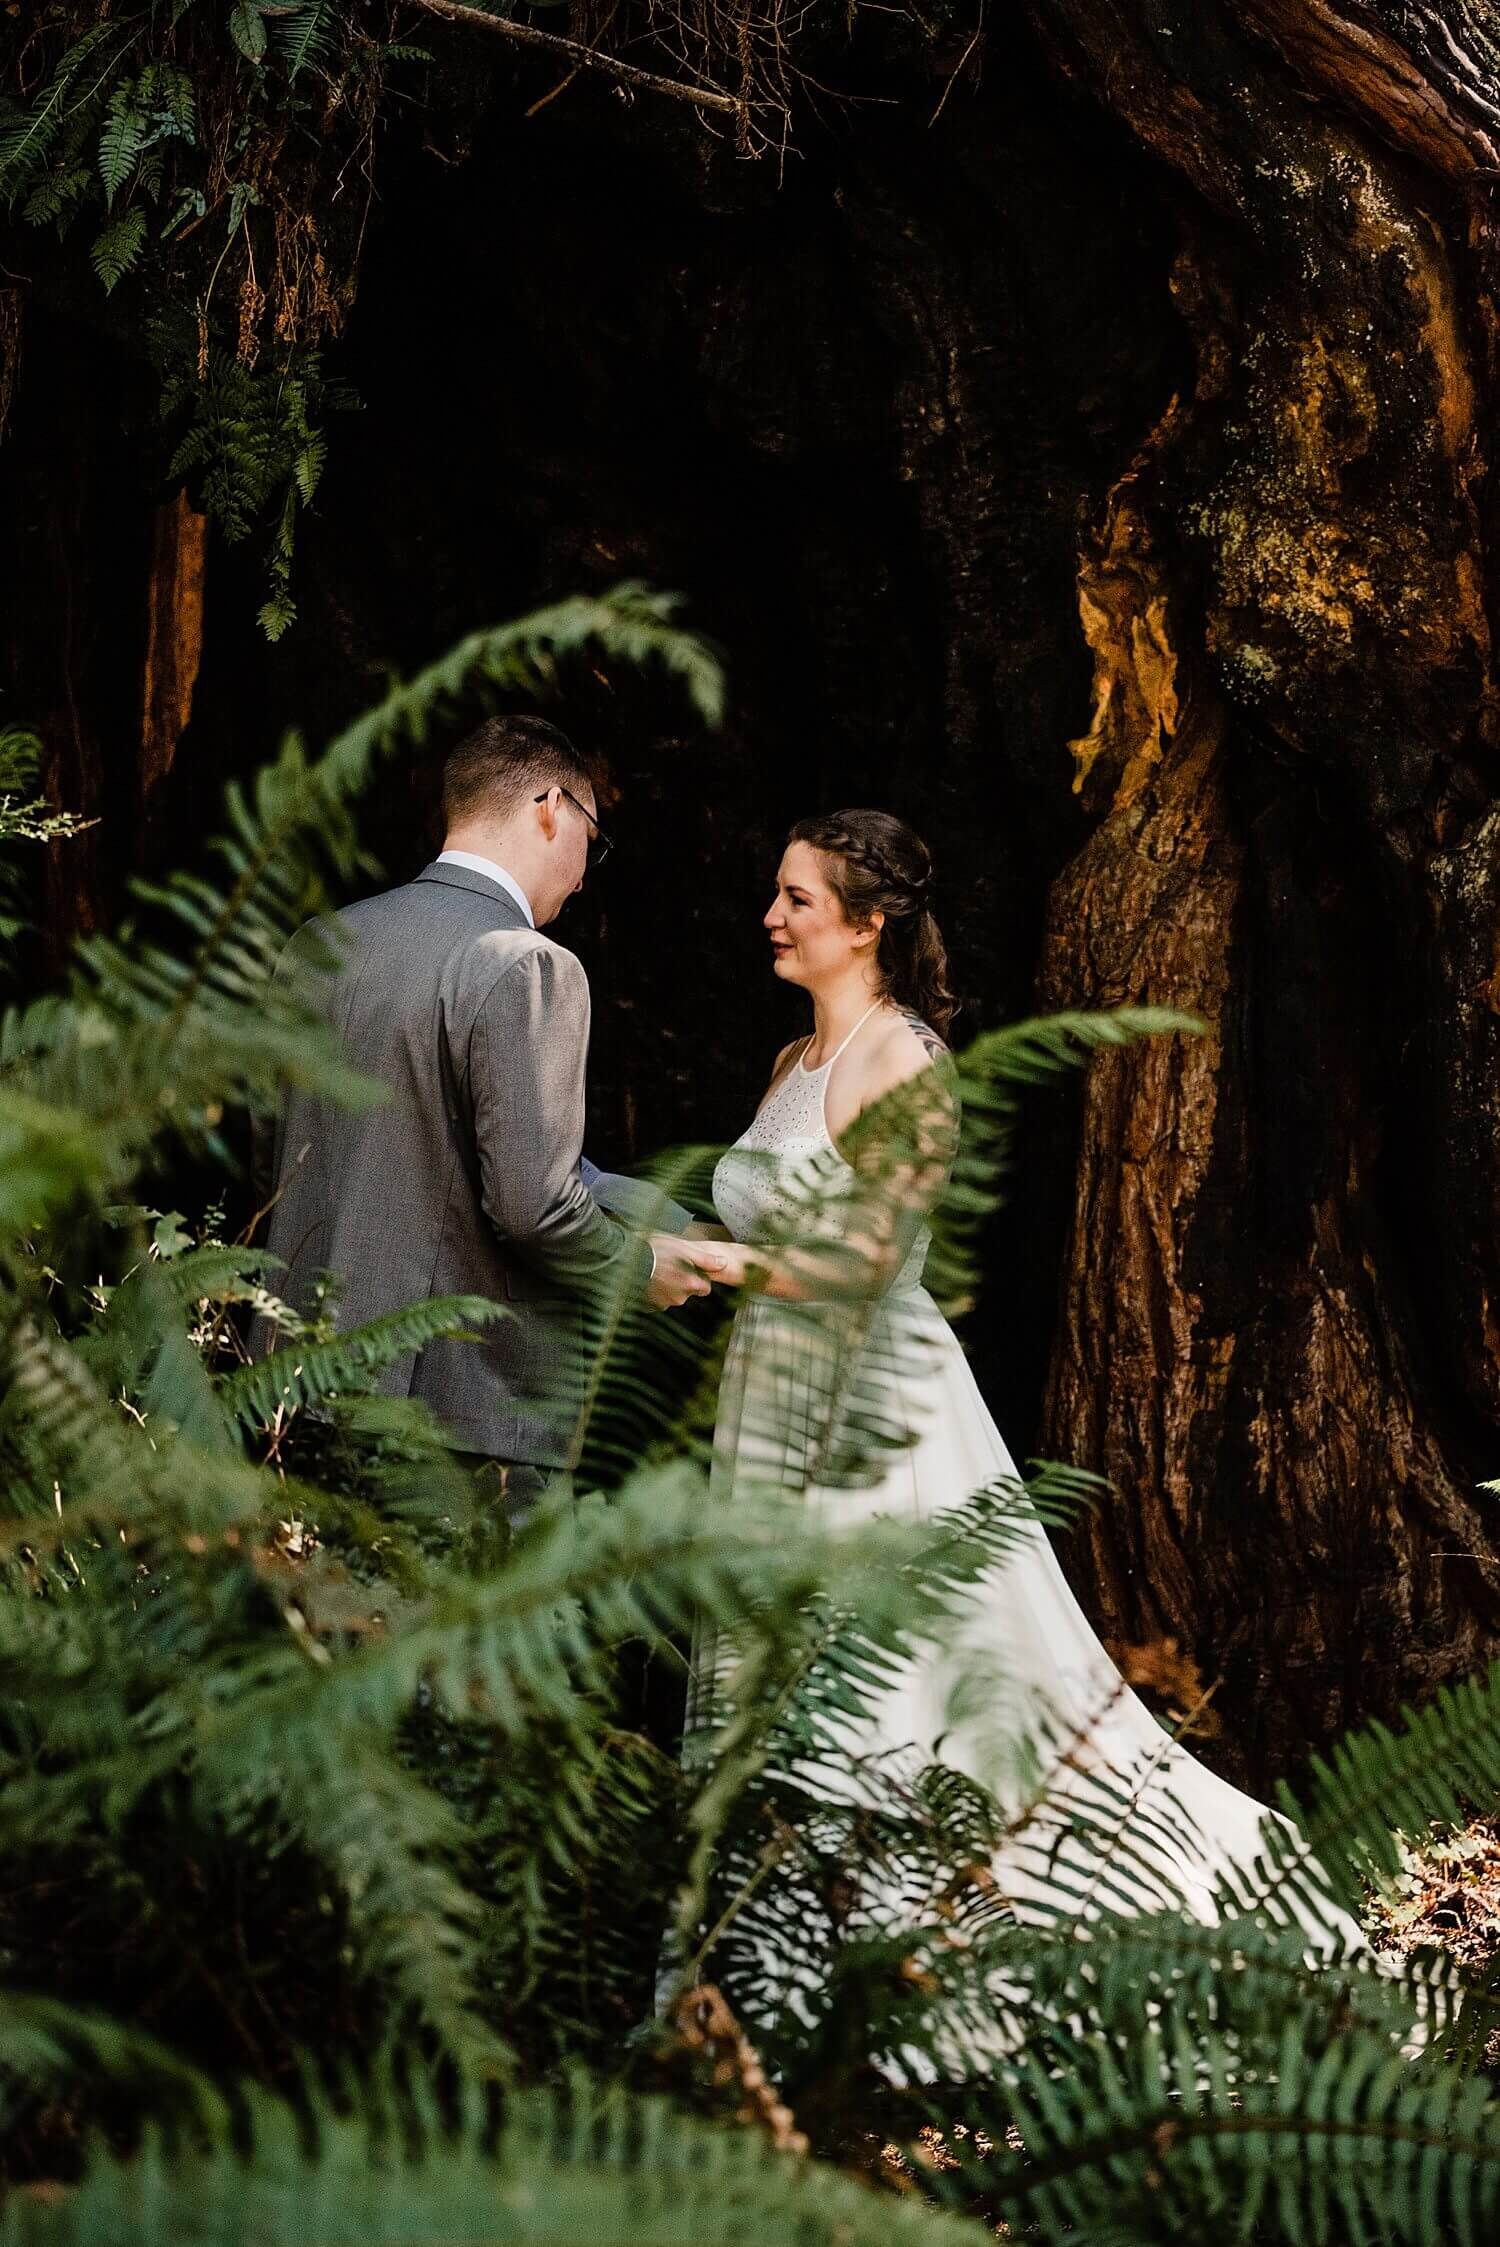 S Photography,avenue of the giants,california,elope,elopement,intimate wedding,jedediah smith,national park,norcal,prairie creek,redwoods,small wedding,state park,